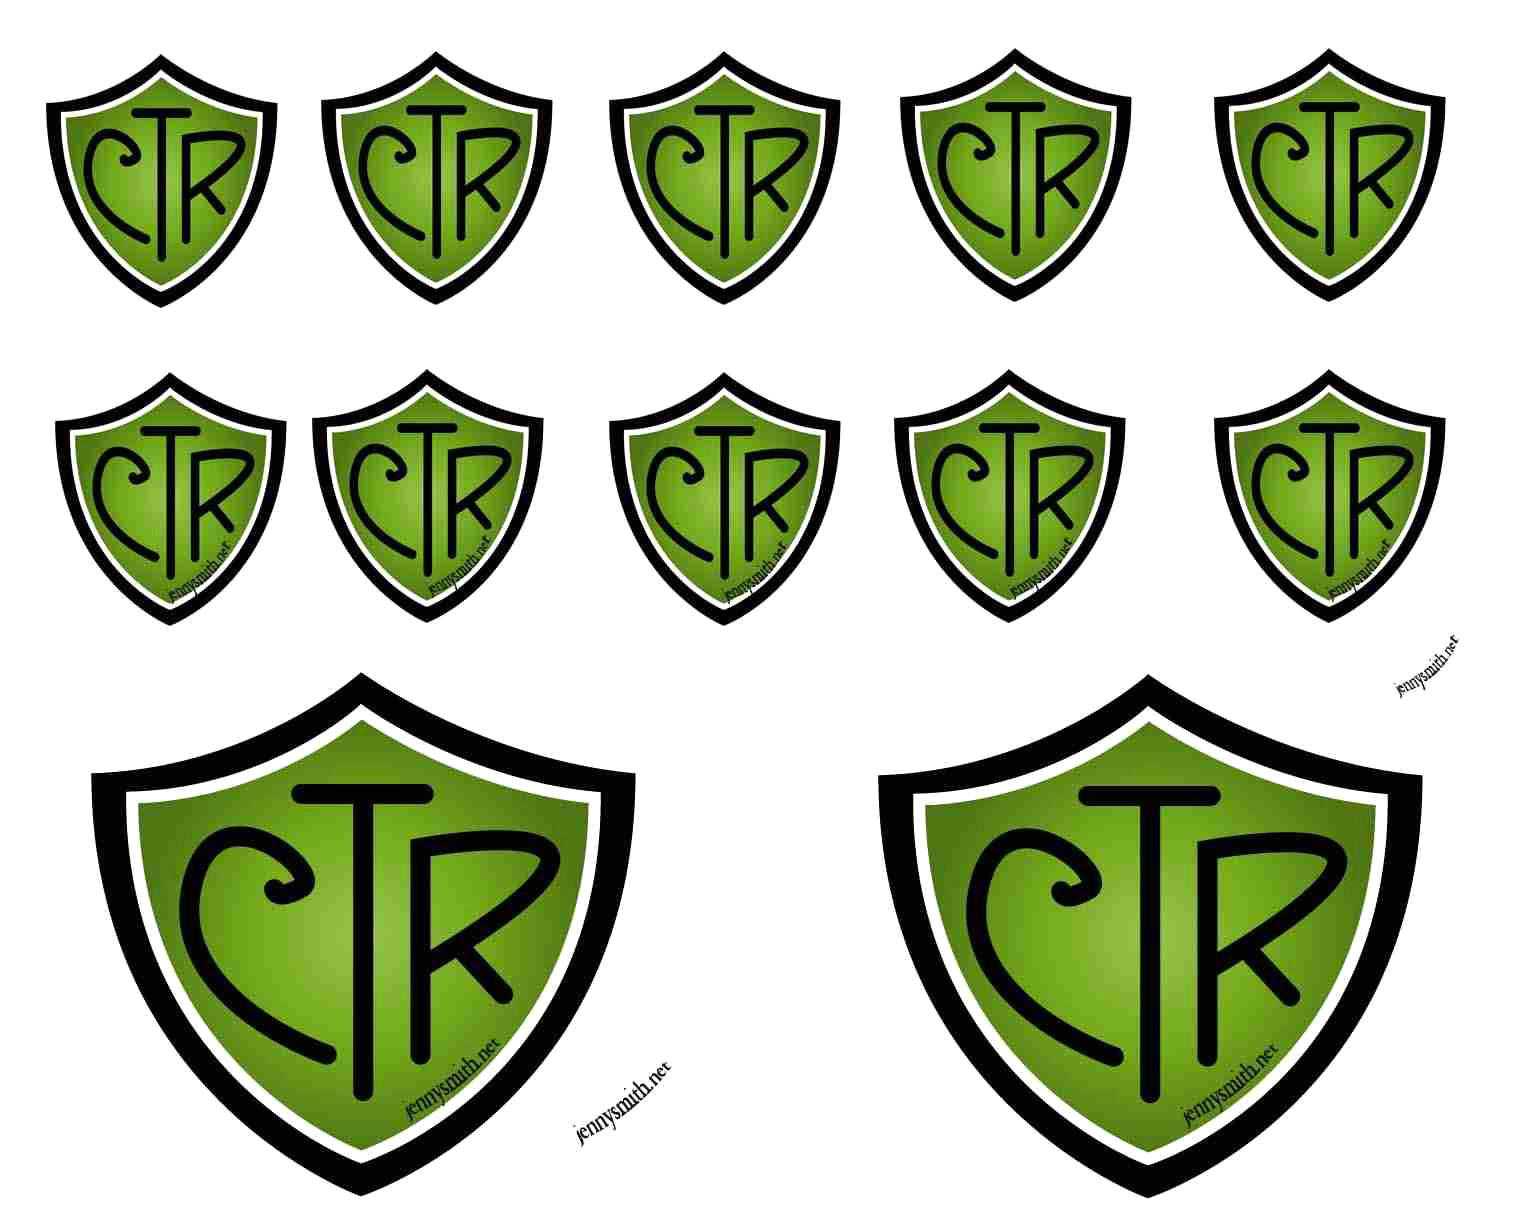 1540x1232 Lds Ctr Shield Clipart 57 With Printable Beautiful Clip Art